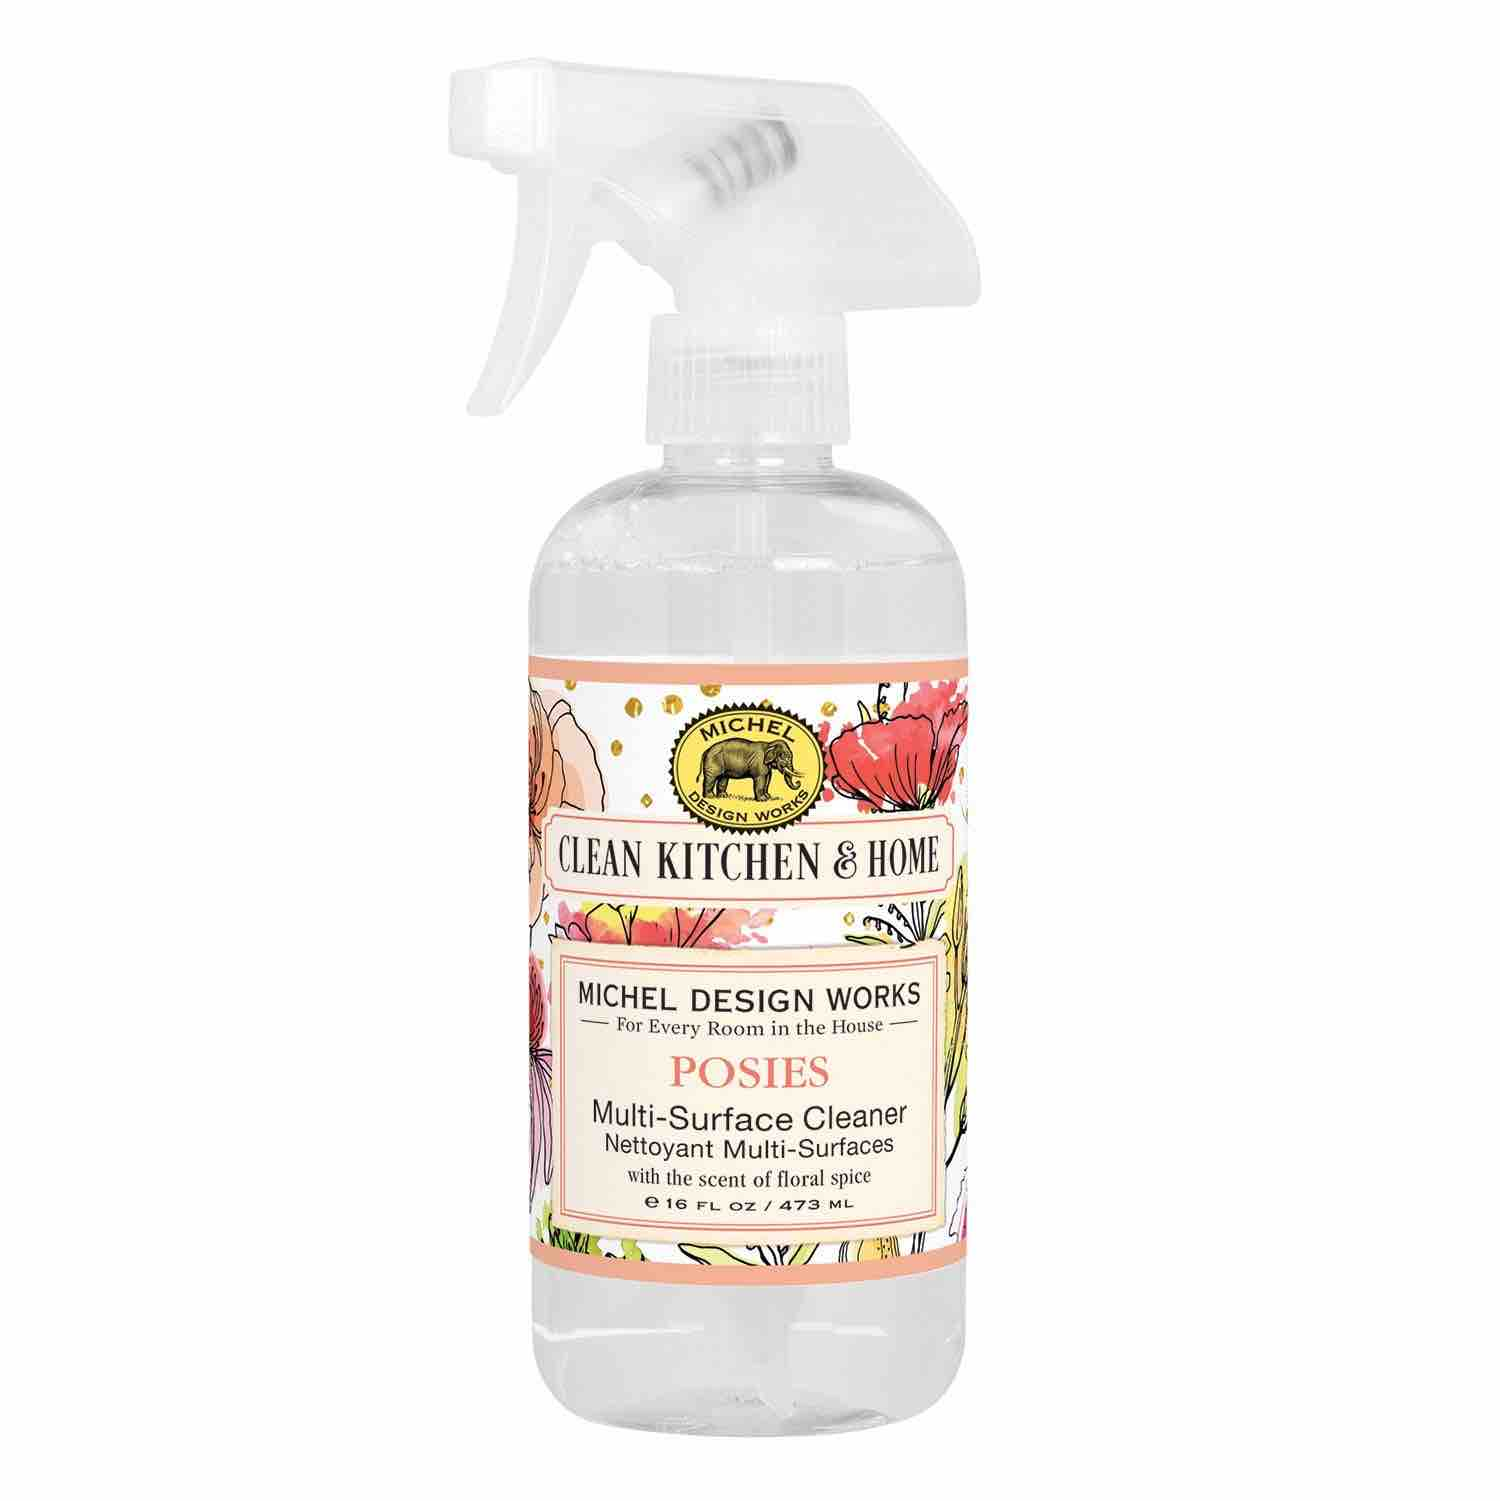 Michel Design Works Multi Surface Cleaner | Posies